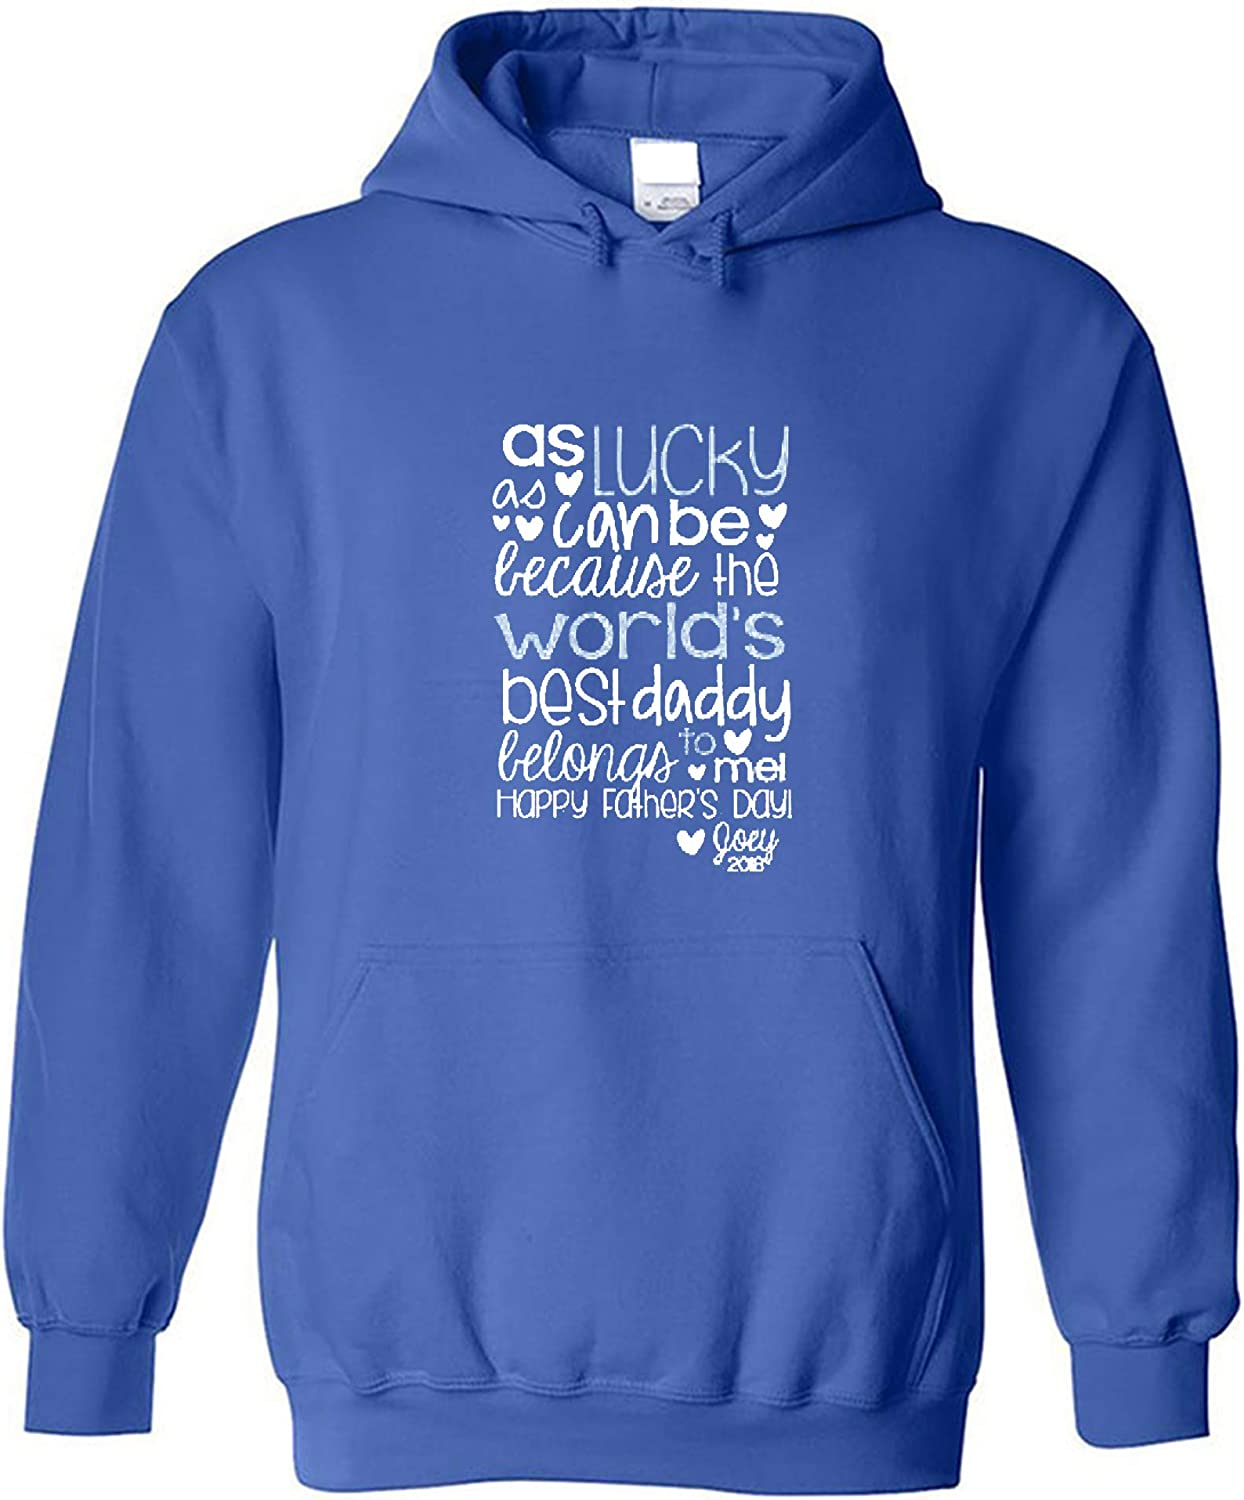 Fathers Day Boys Hoodie, Fathers Day Boys T Shirt, Fathers Day Boys T-Shirt, Fathers Day Boys Tshirt, Sweatshirt, Long Sleeve, Tank top